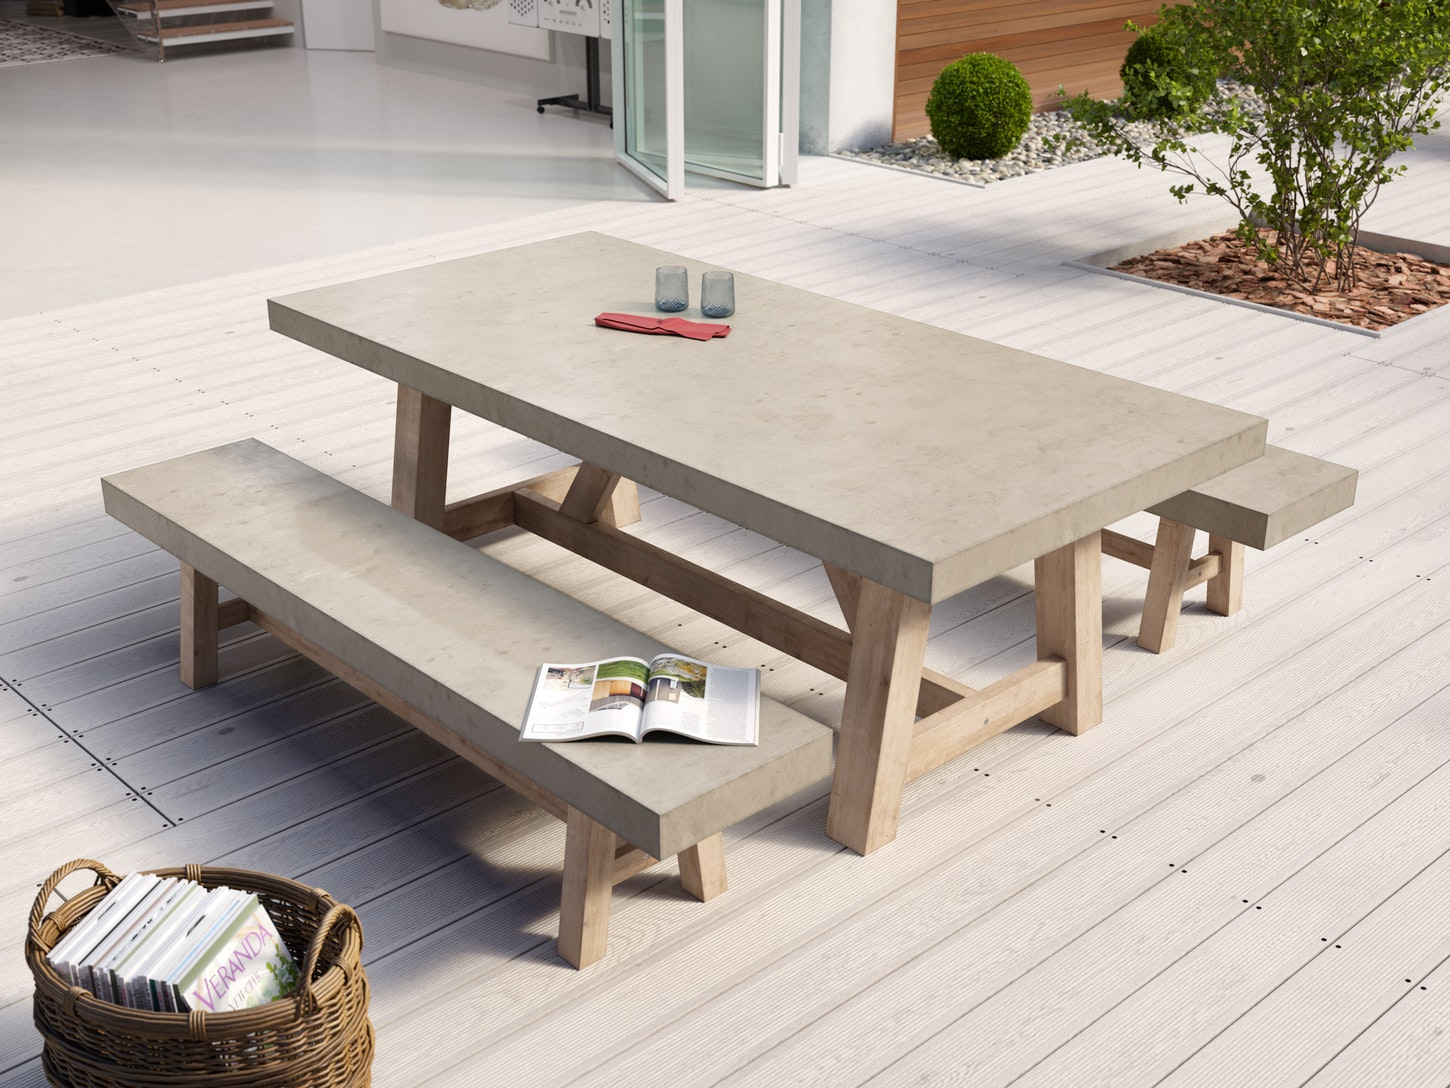 Tate concrete outdoor dining set dining sets outdoor furniture home outdoor living trade tested